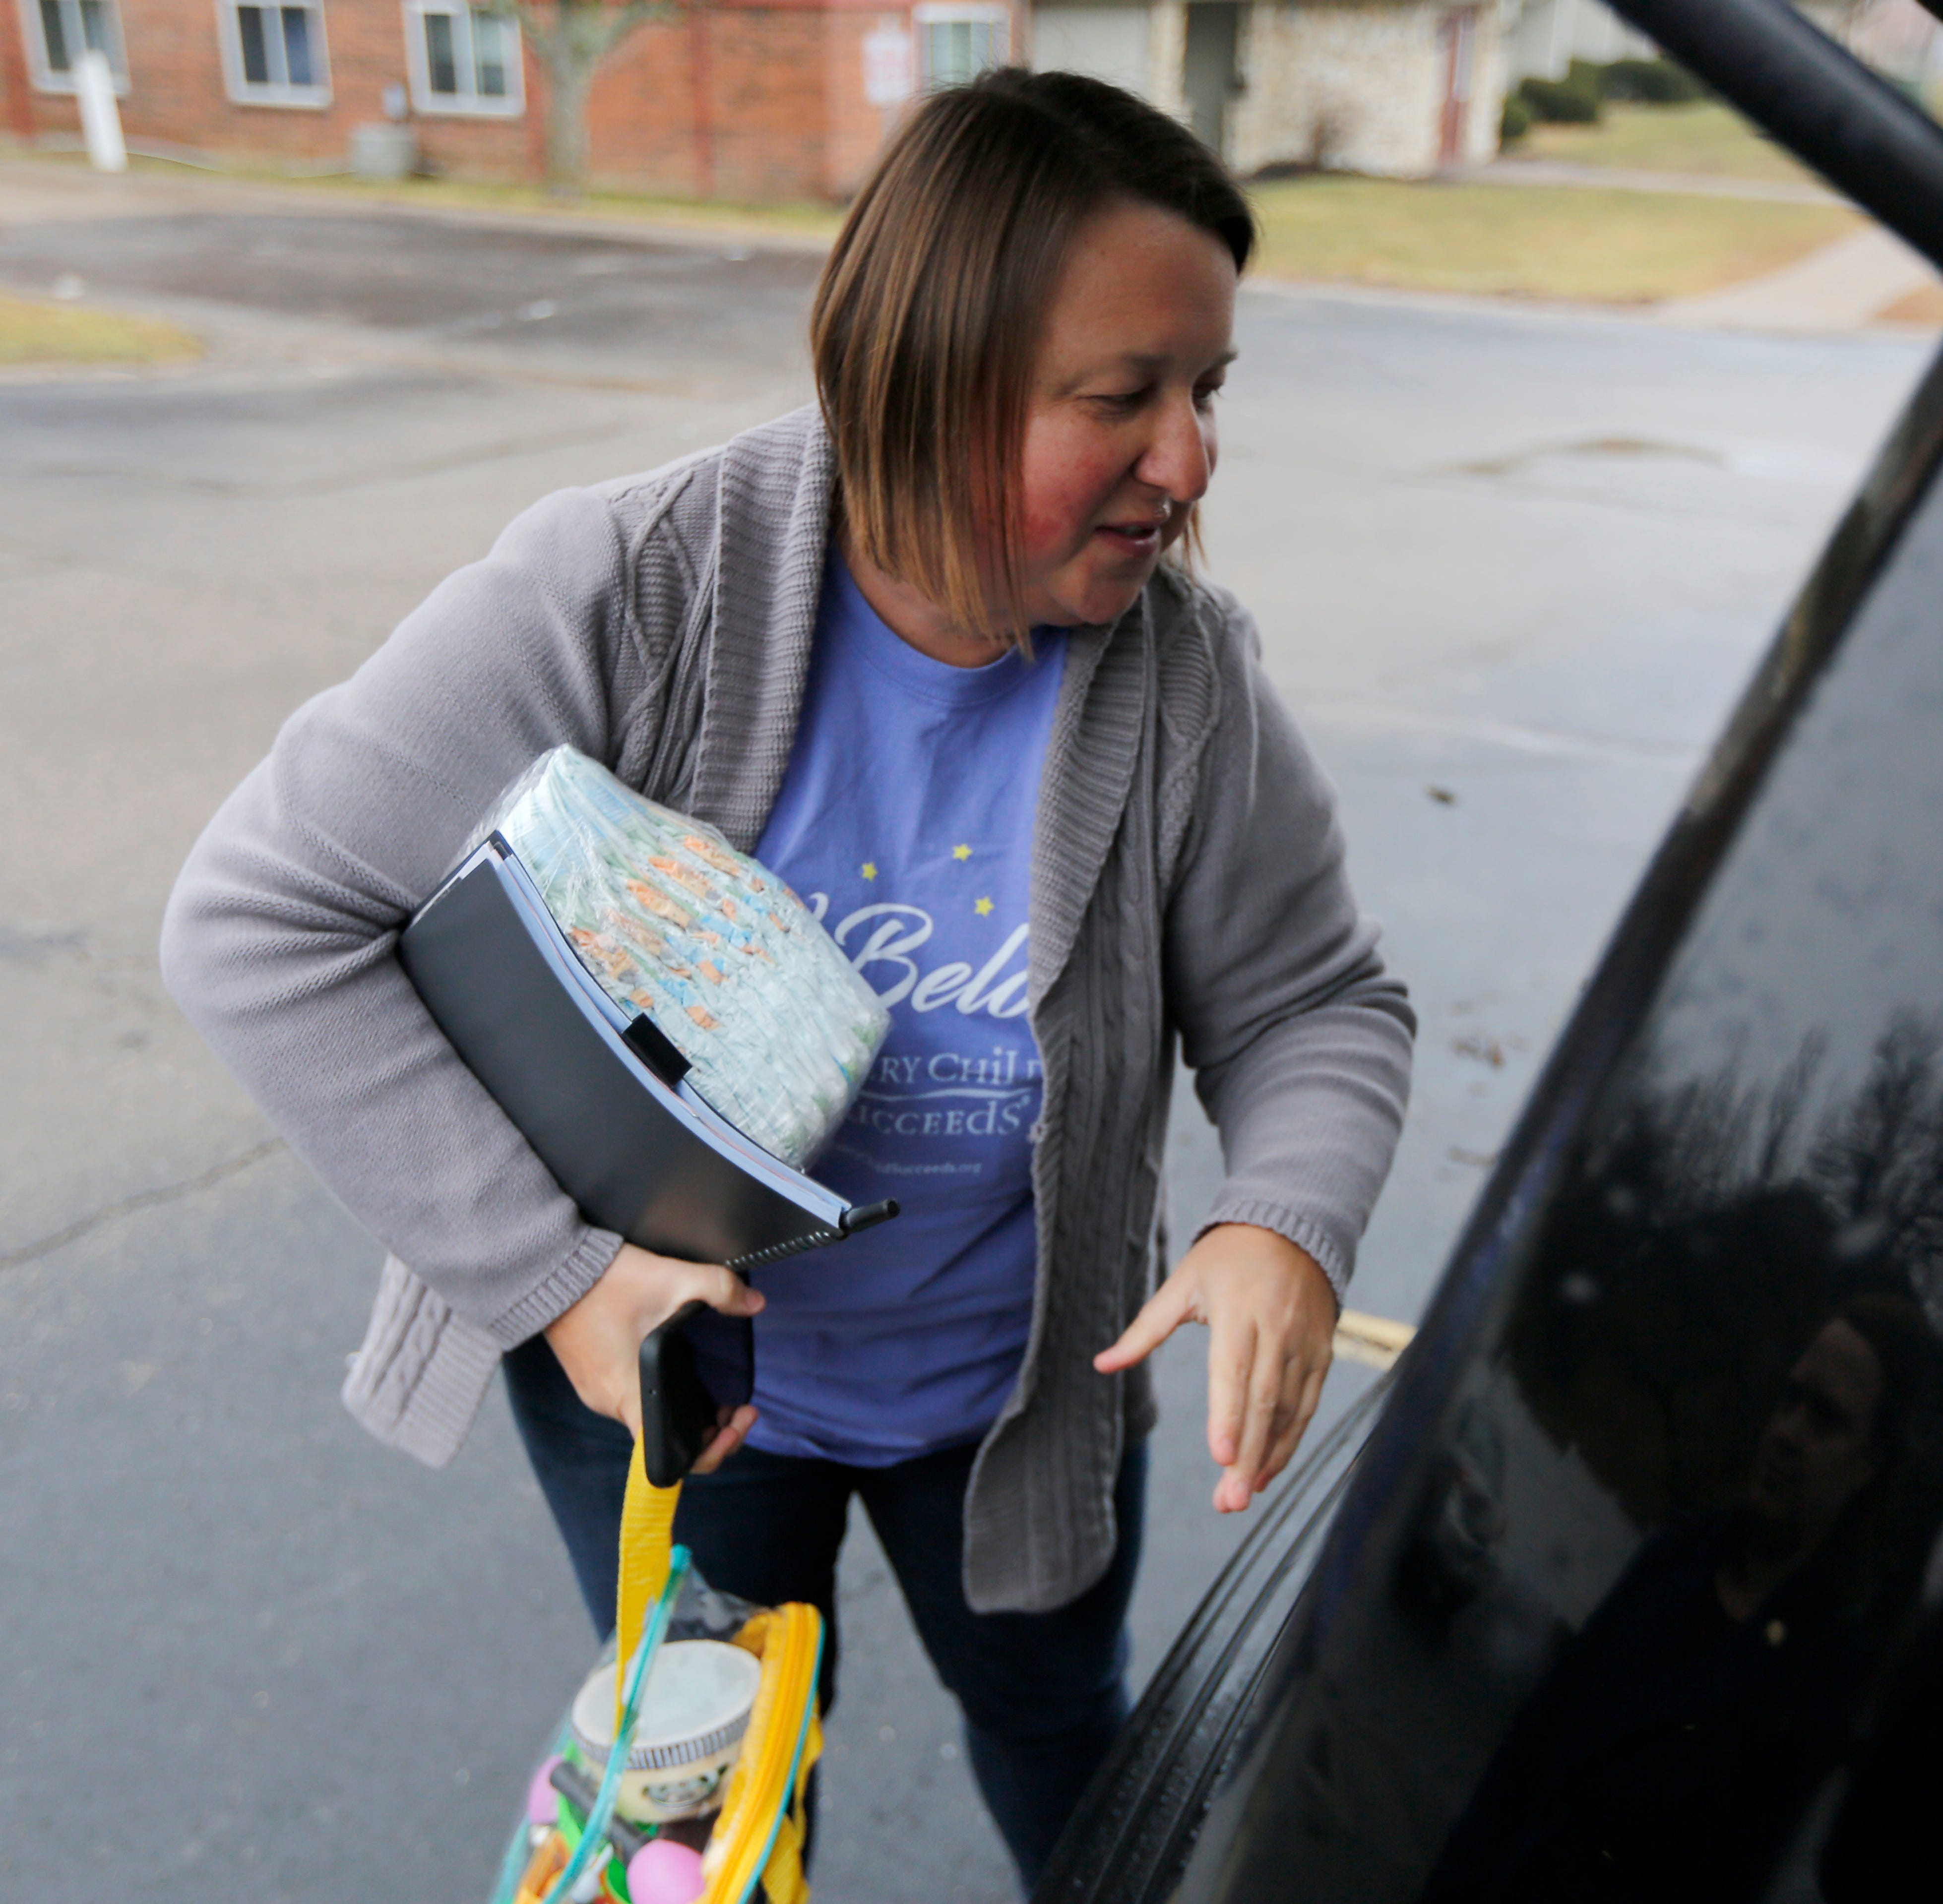 Every Child Succeeds supervisor Mindy Heathcoat Maurer packs up supplies and toys on a weekly visit to Ashley Ohmart, a young mother living in the Westwood neighborhood of Cincinnati on Tuesday, Feb. 5, 2019.